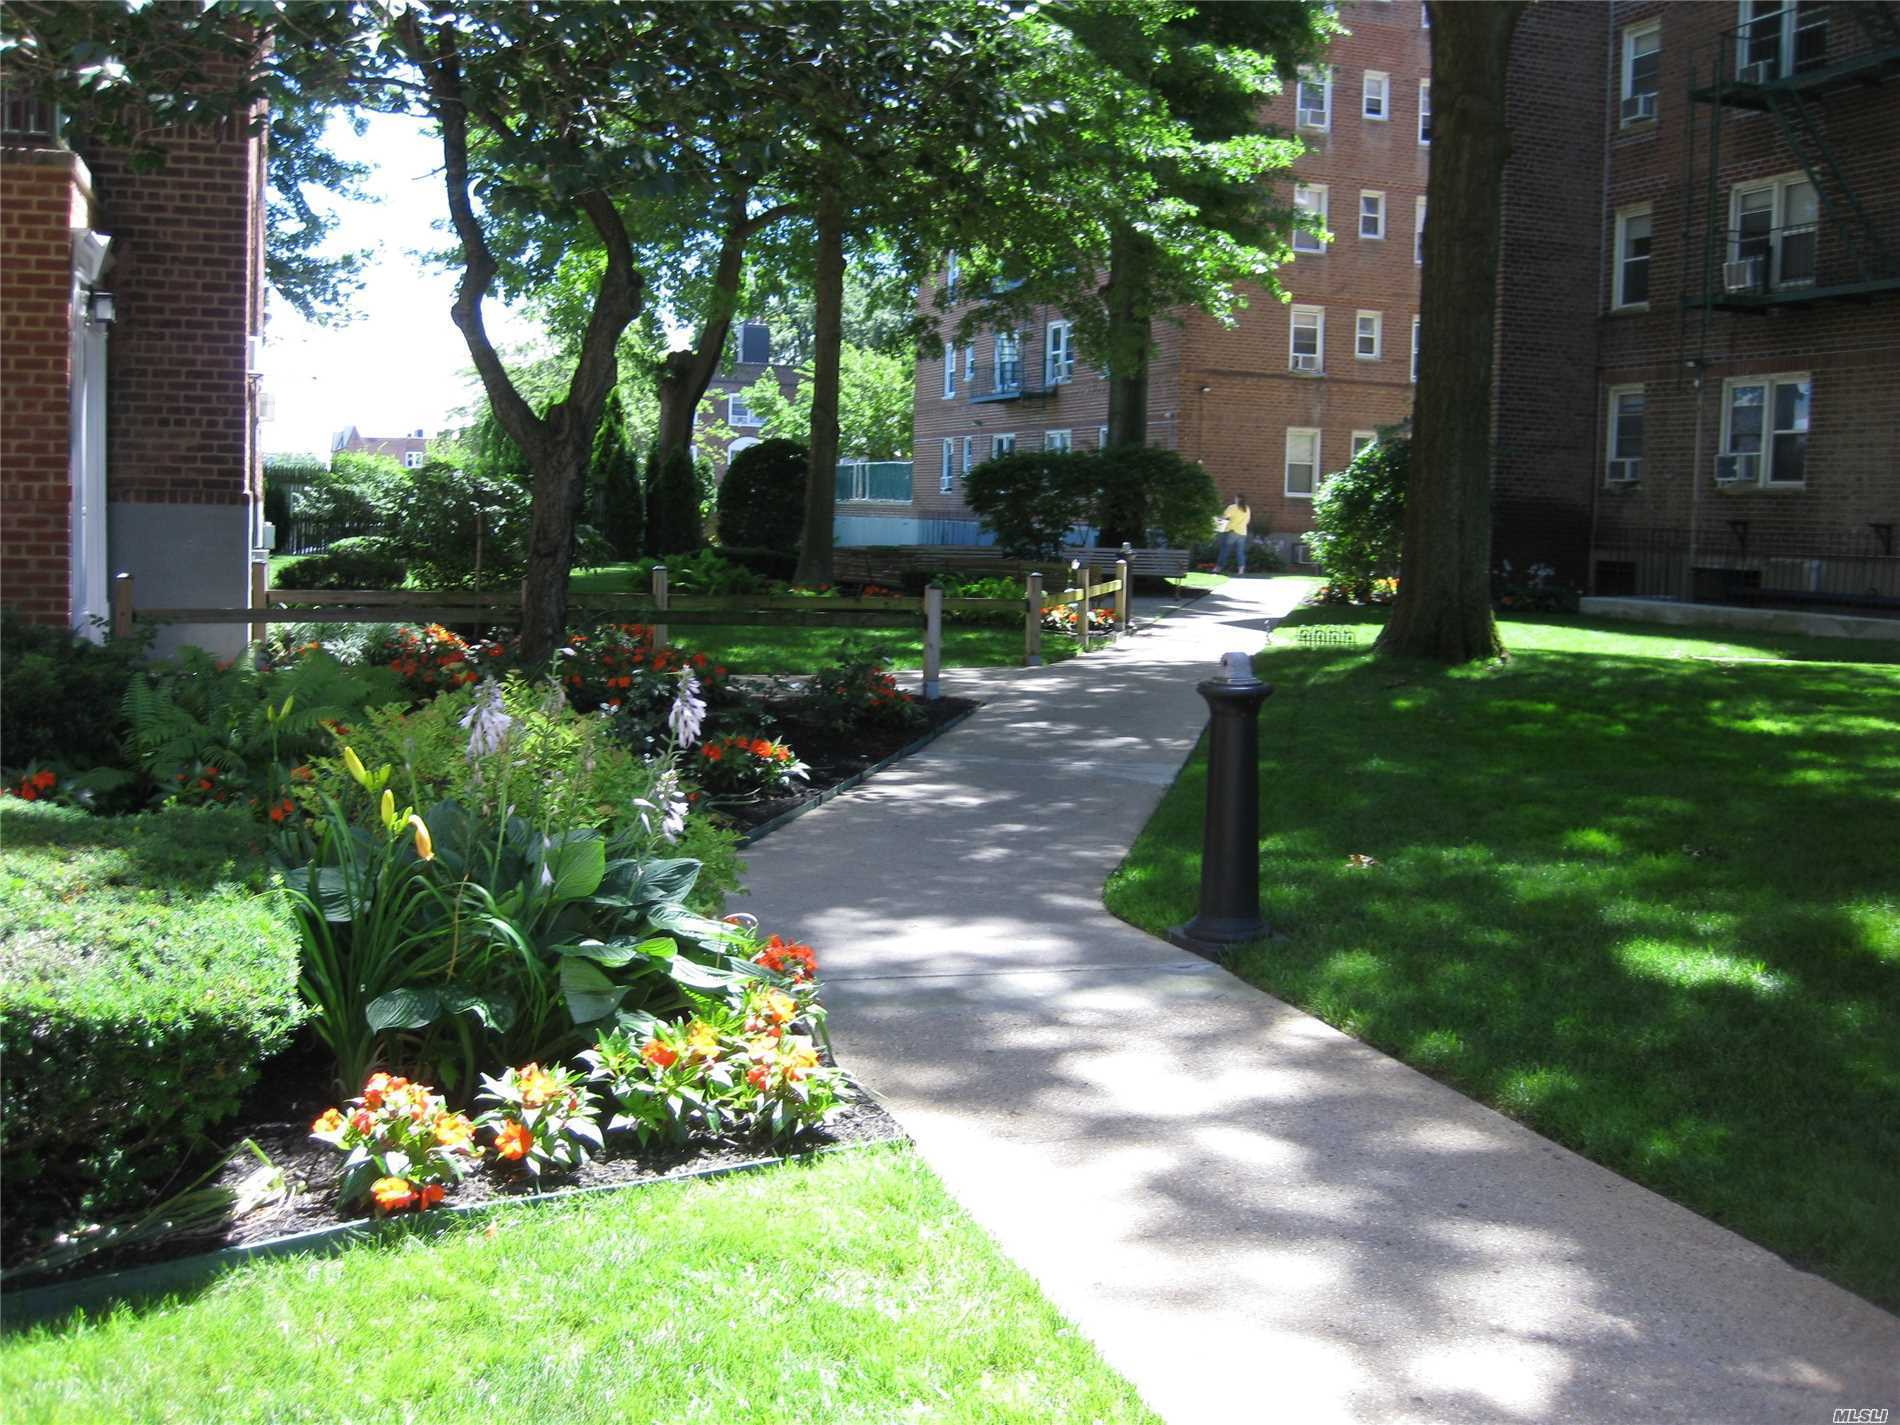 Beautiful North/Easterly Sunny Breezes !! .Great Top Floor Apt W/Birds Eye Views. At The West Hempstead Border Just South Of Garden City's Fine Restaurants And Shops. Owner Motivated, Unique Features And Great Tax Benefits!!  Near Lirr,  Quiet Building. Maintenance Includes Property Taxes. Elevator Building With Hi Tech Laundry In Basement. This Is A Must See !! Easy To View !! No Dogs.